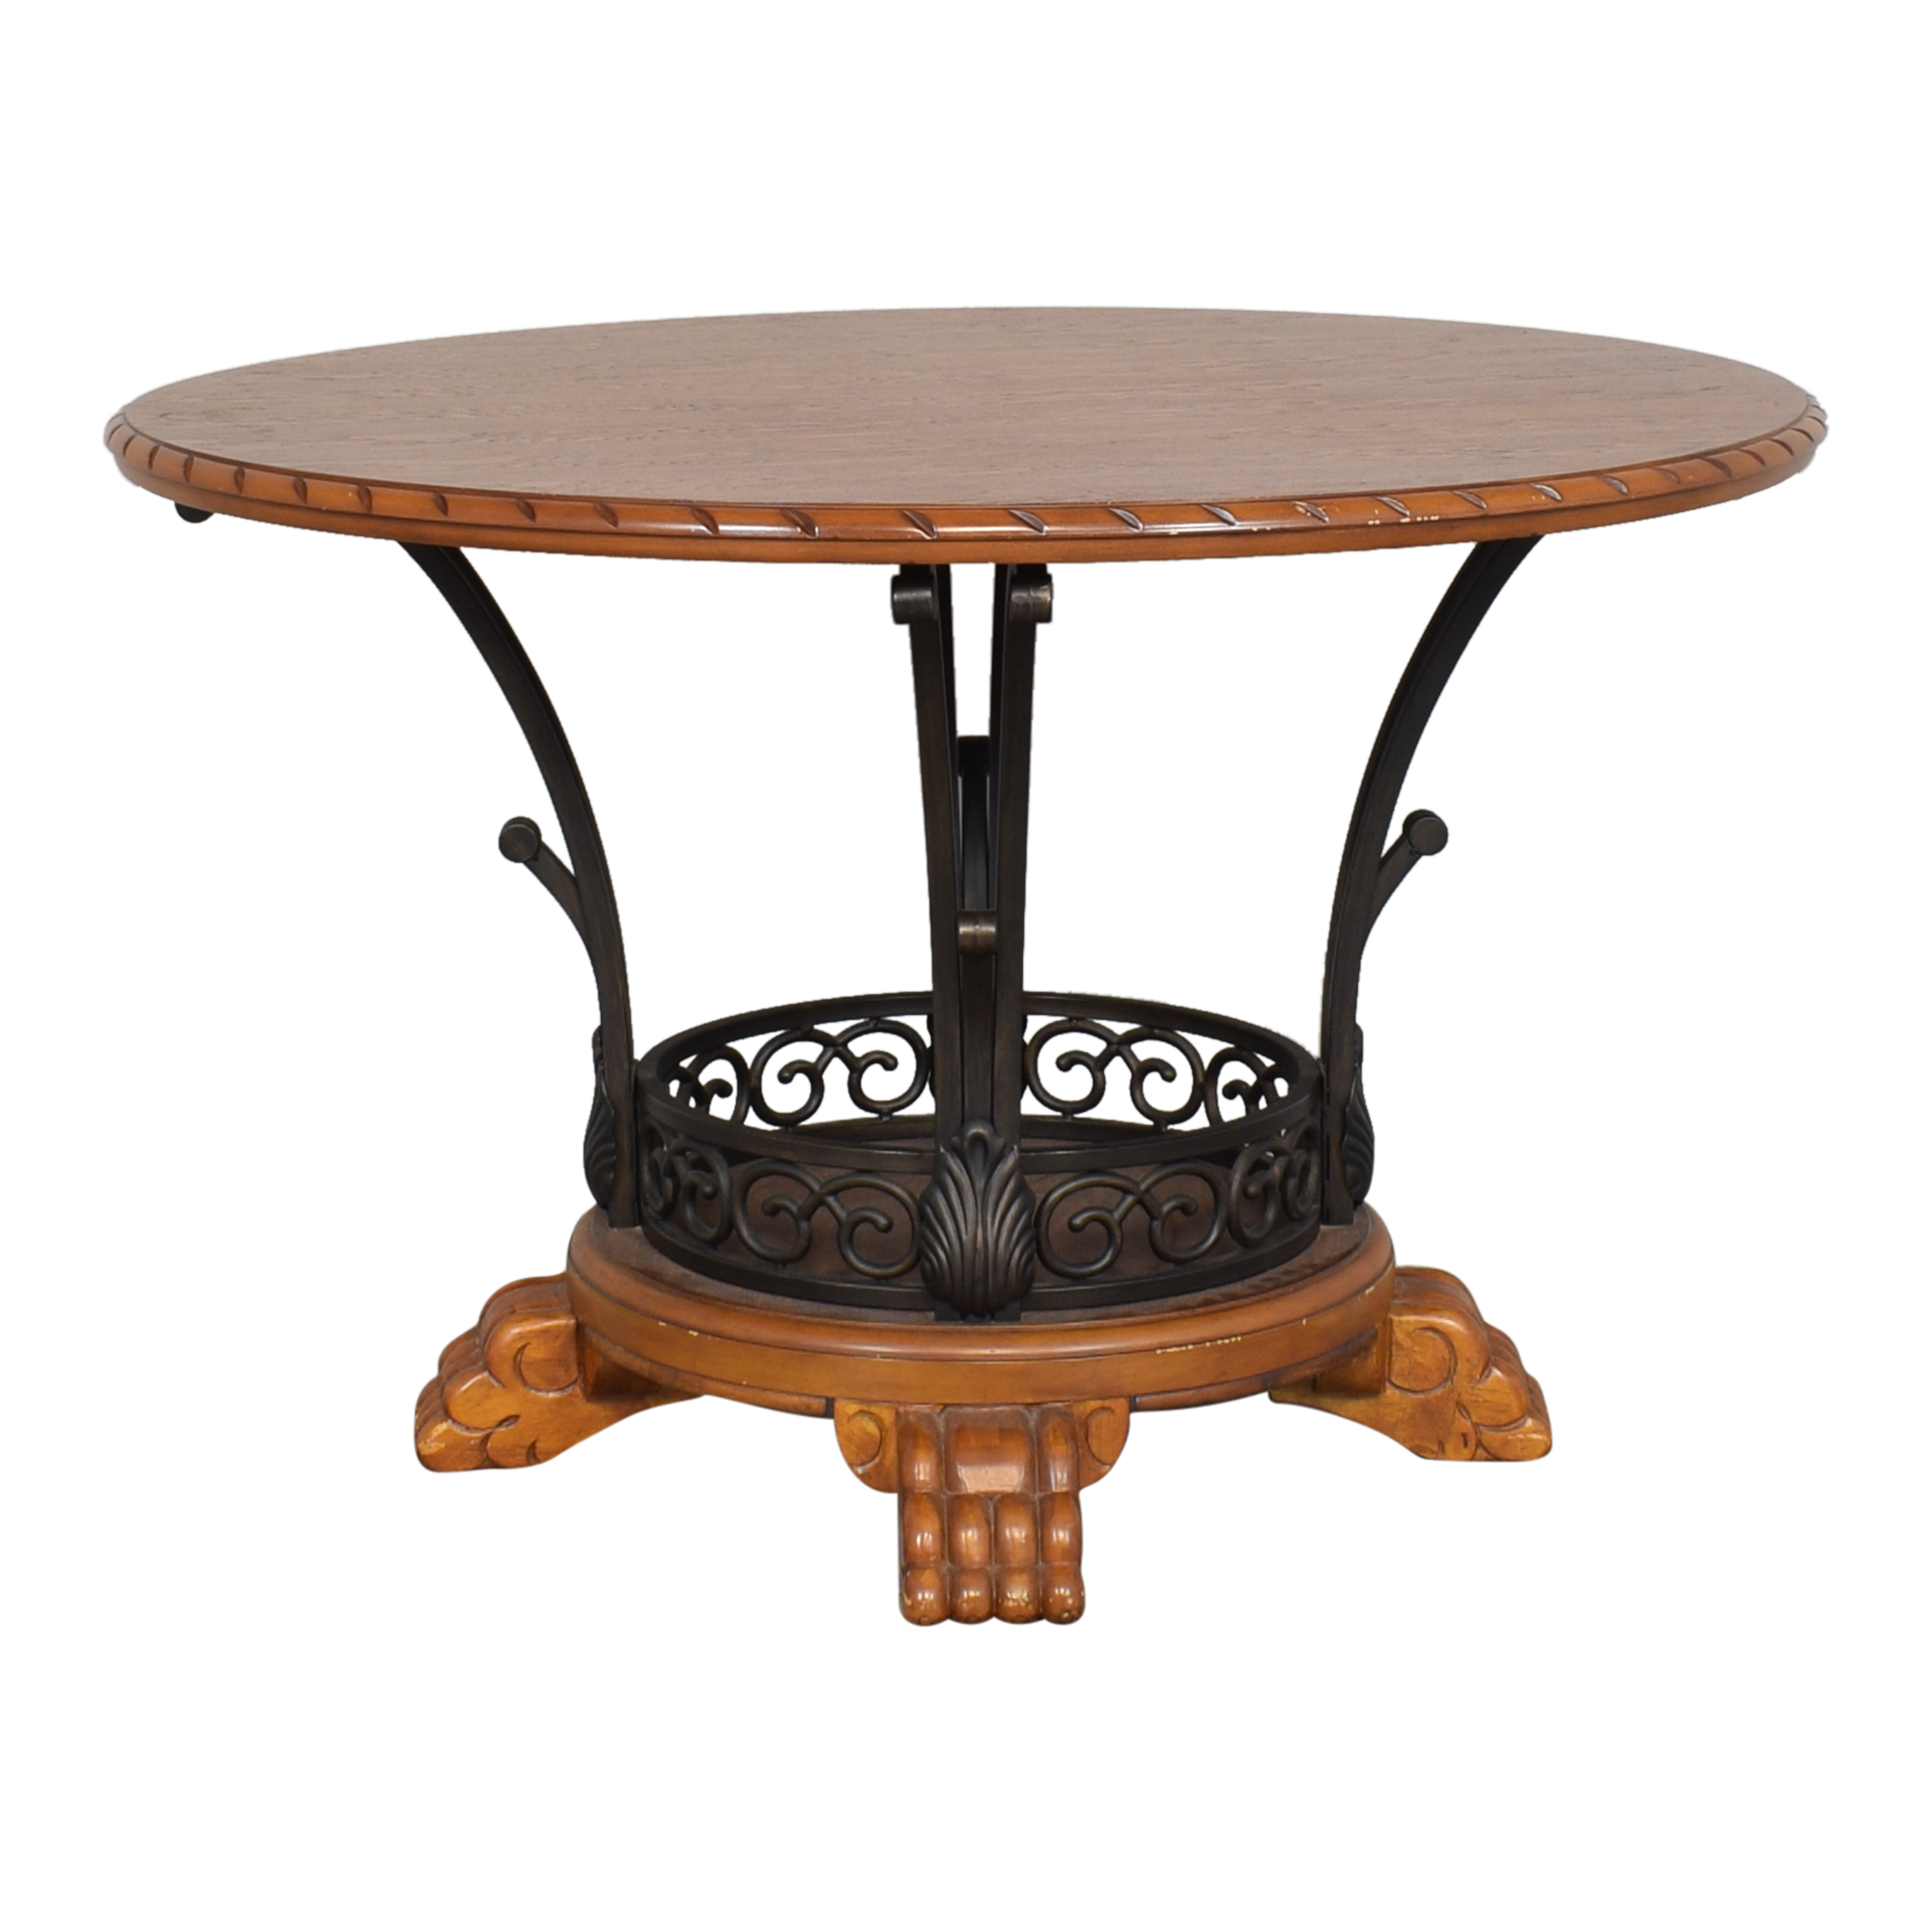 Round Openwork Pedestal Dining Table / Dinner Tables